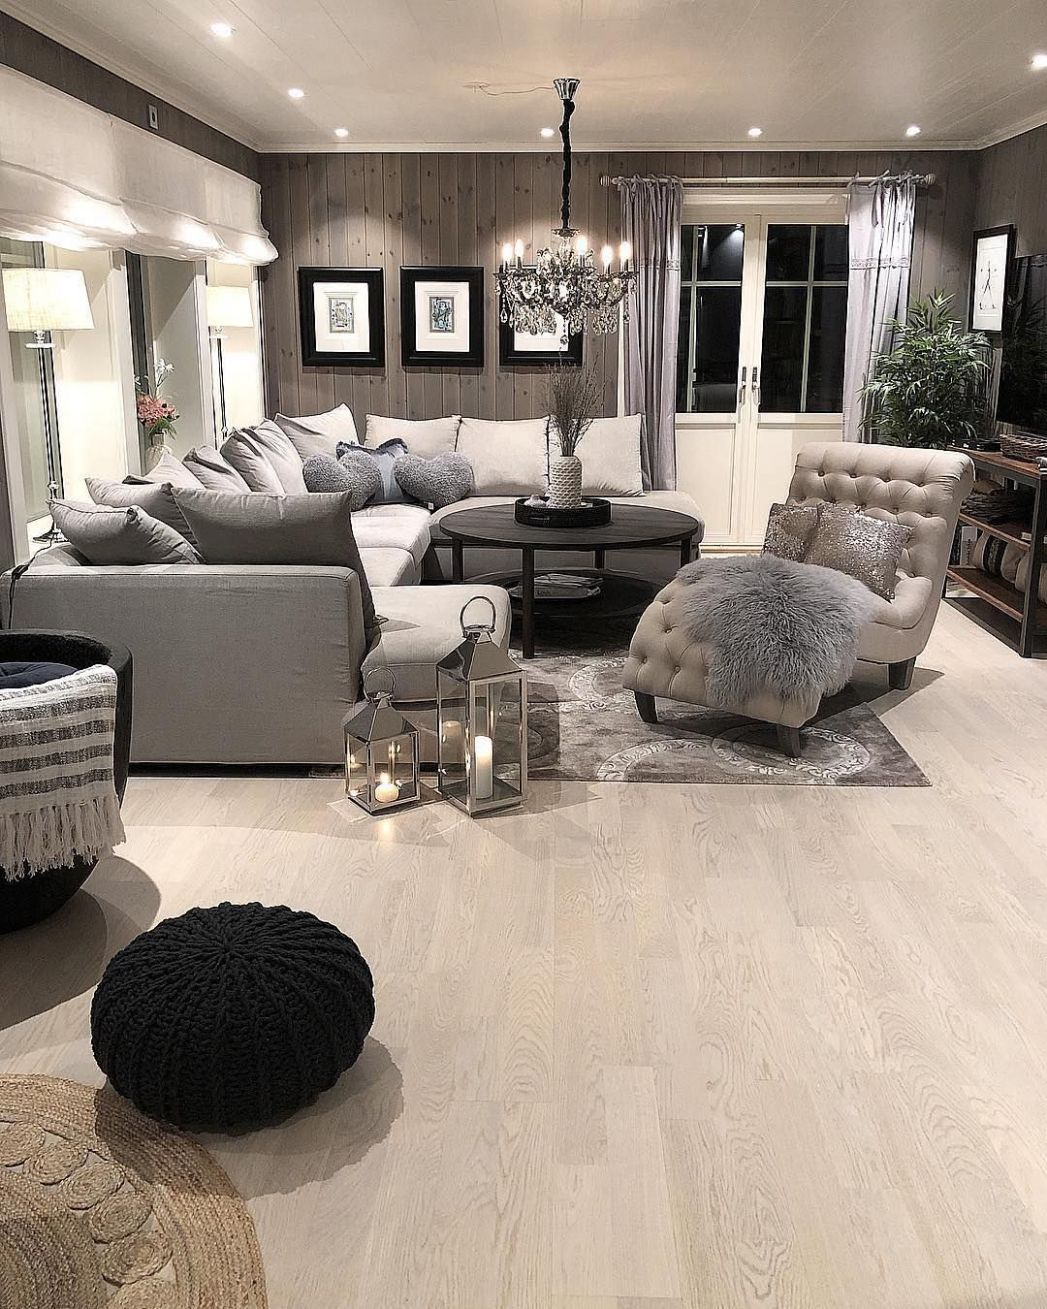 Interior & ? b | Living room ideas 9, Living room decor ...